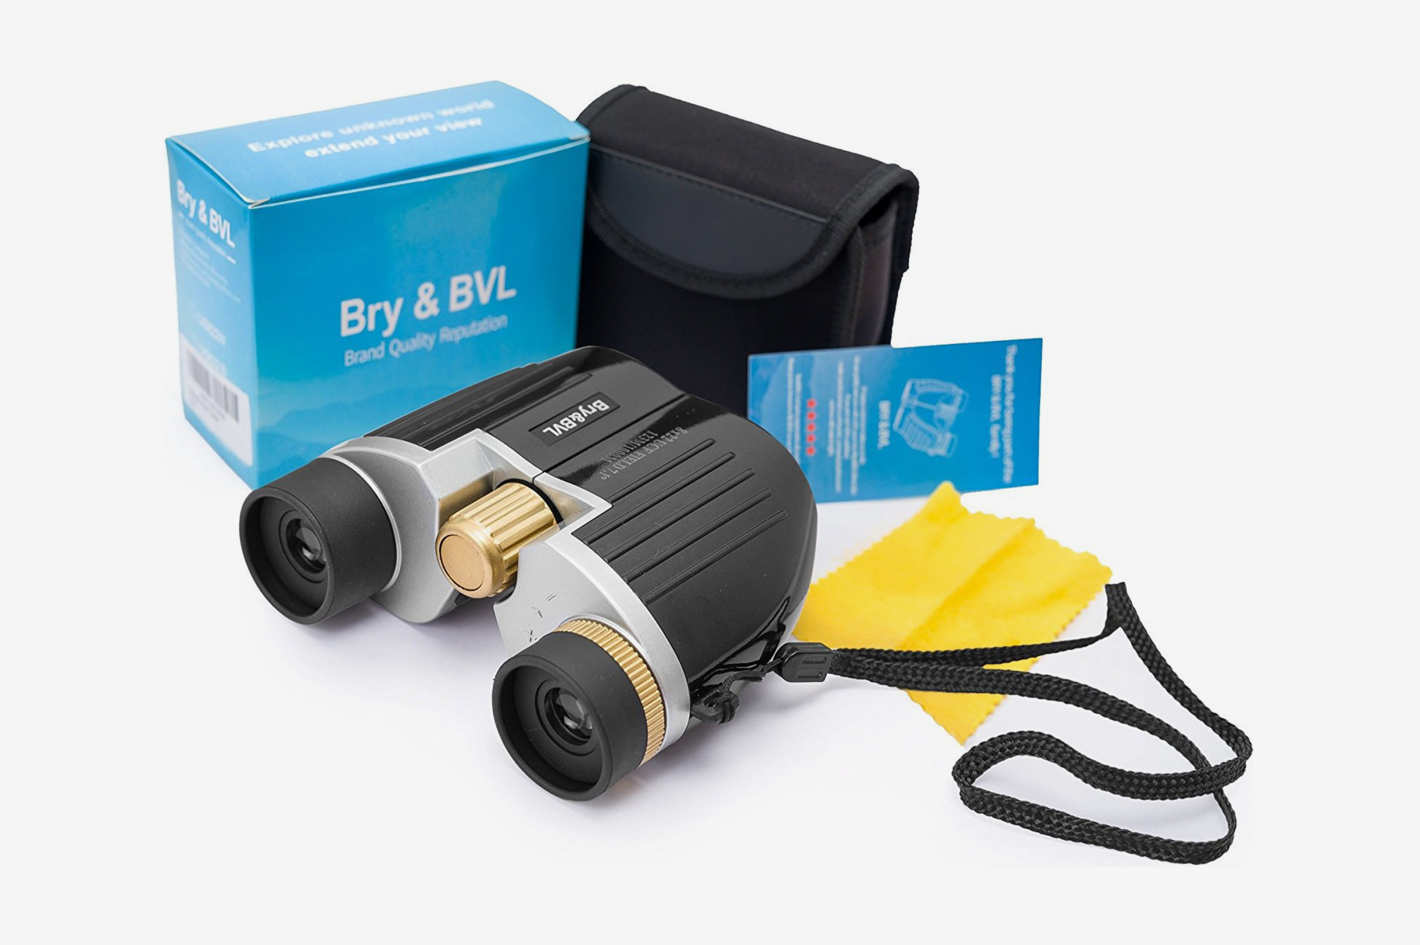 Bry & BVL Binoculars for Kids